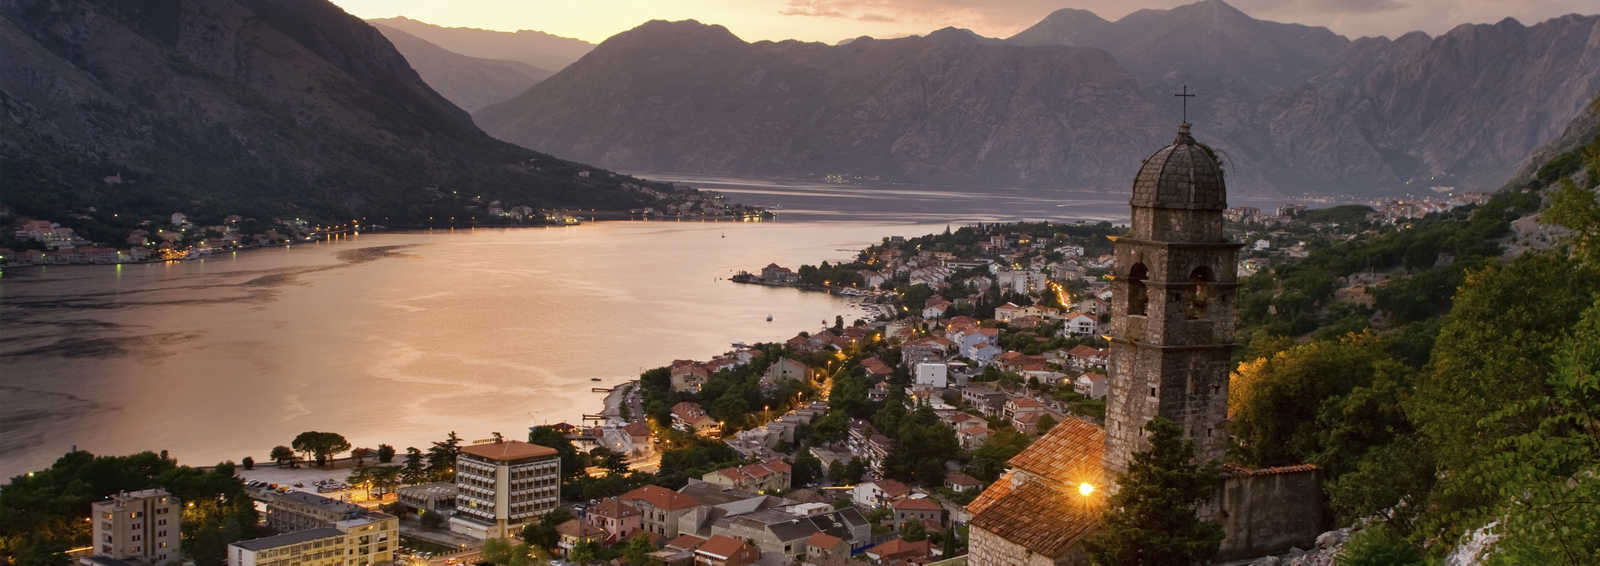 Our Lady of Health Church - Kotor, Montenegro